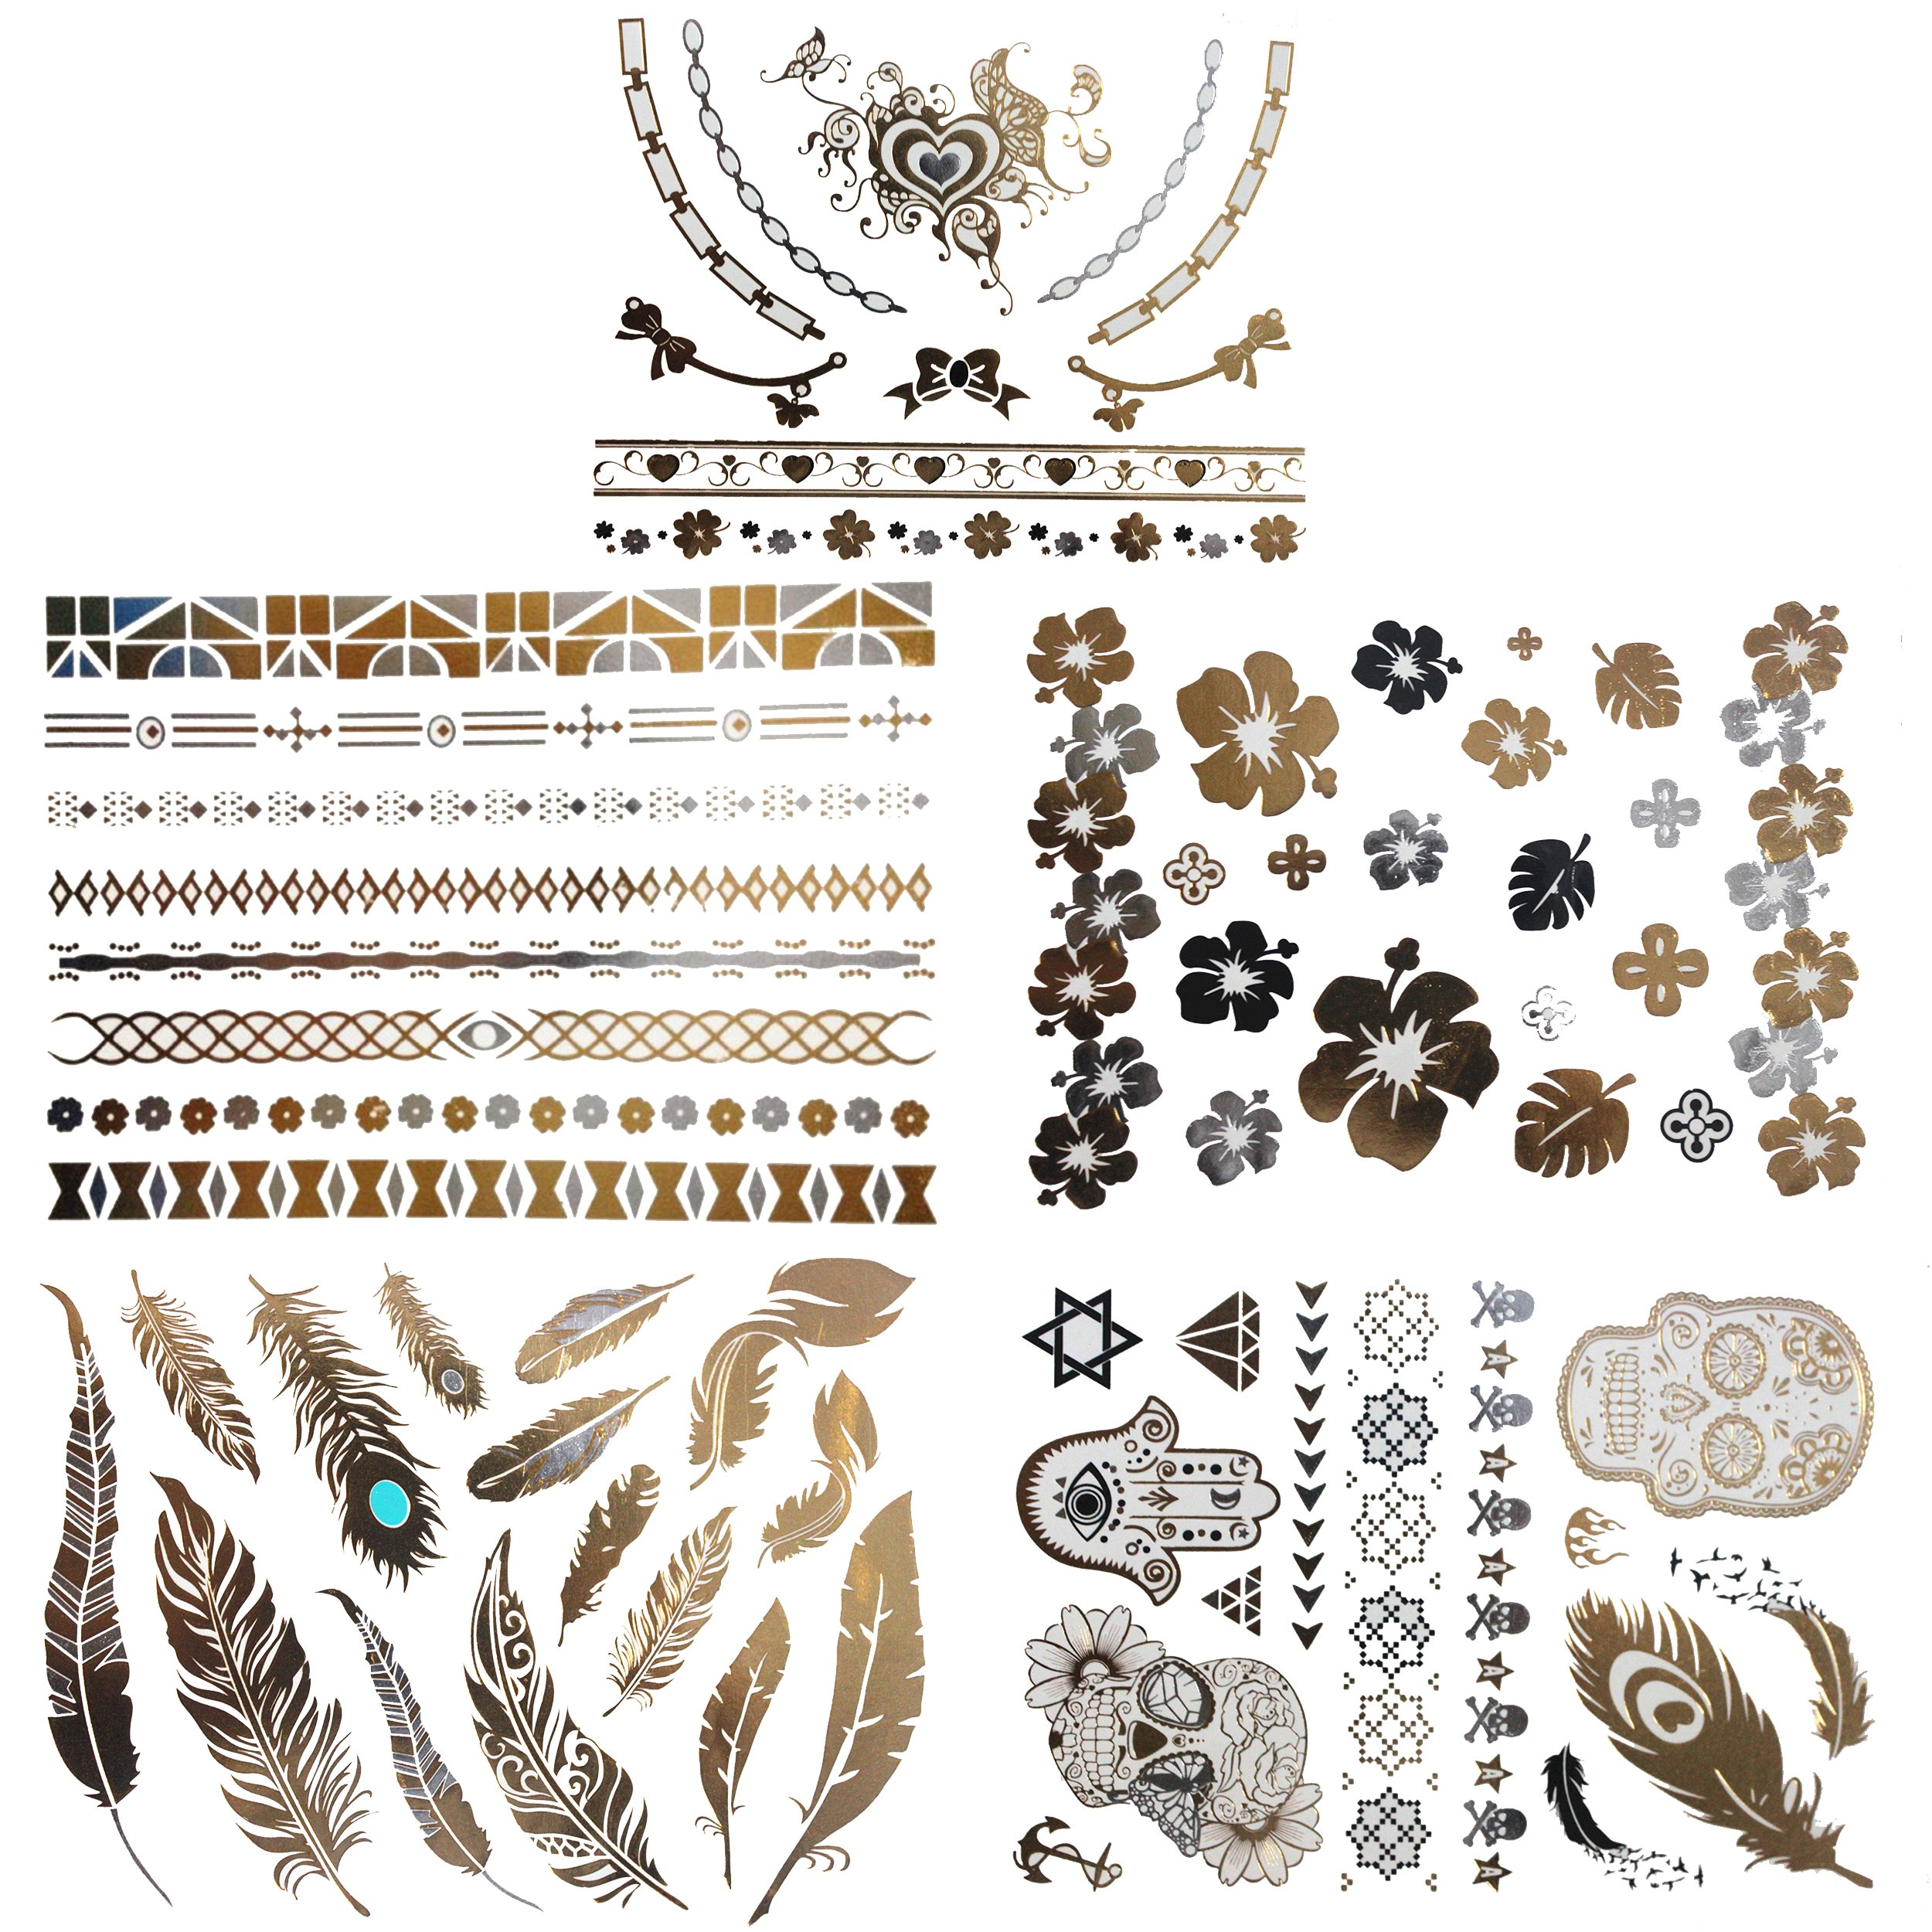 Metallic Temporary Tattoo - 65+ Premium Tattoos Classic Gold, Silver &Sky Blue Design - 5 Sheets - Perfect for Arm, Wrist, Neck & Face - BEST DEAL ON AMAZON by Coolest Bear